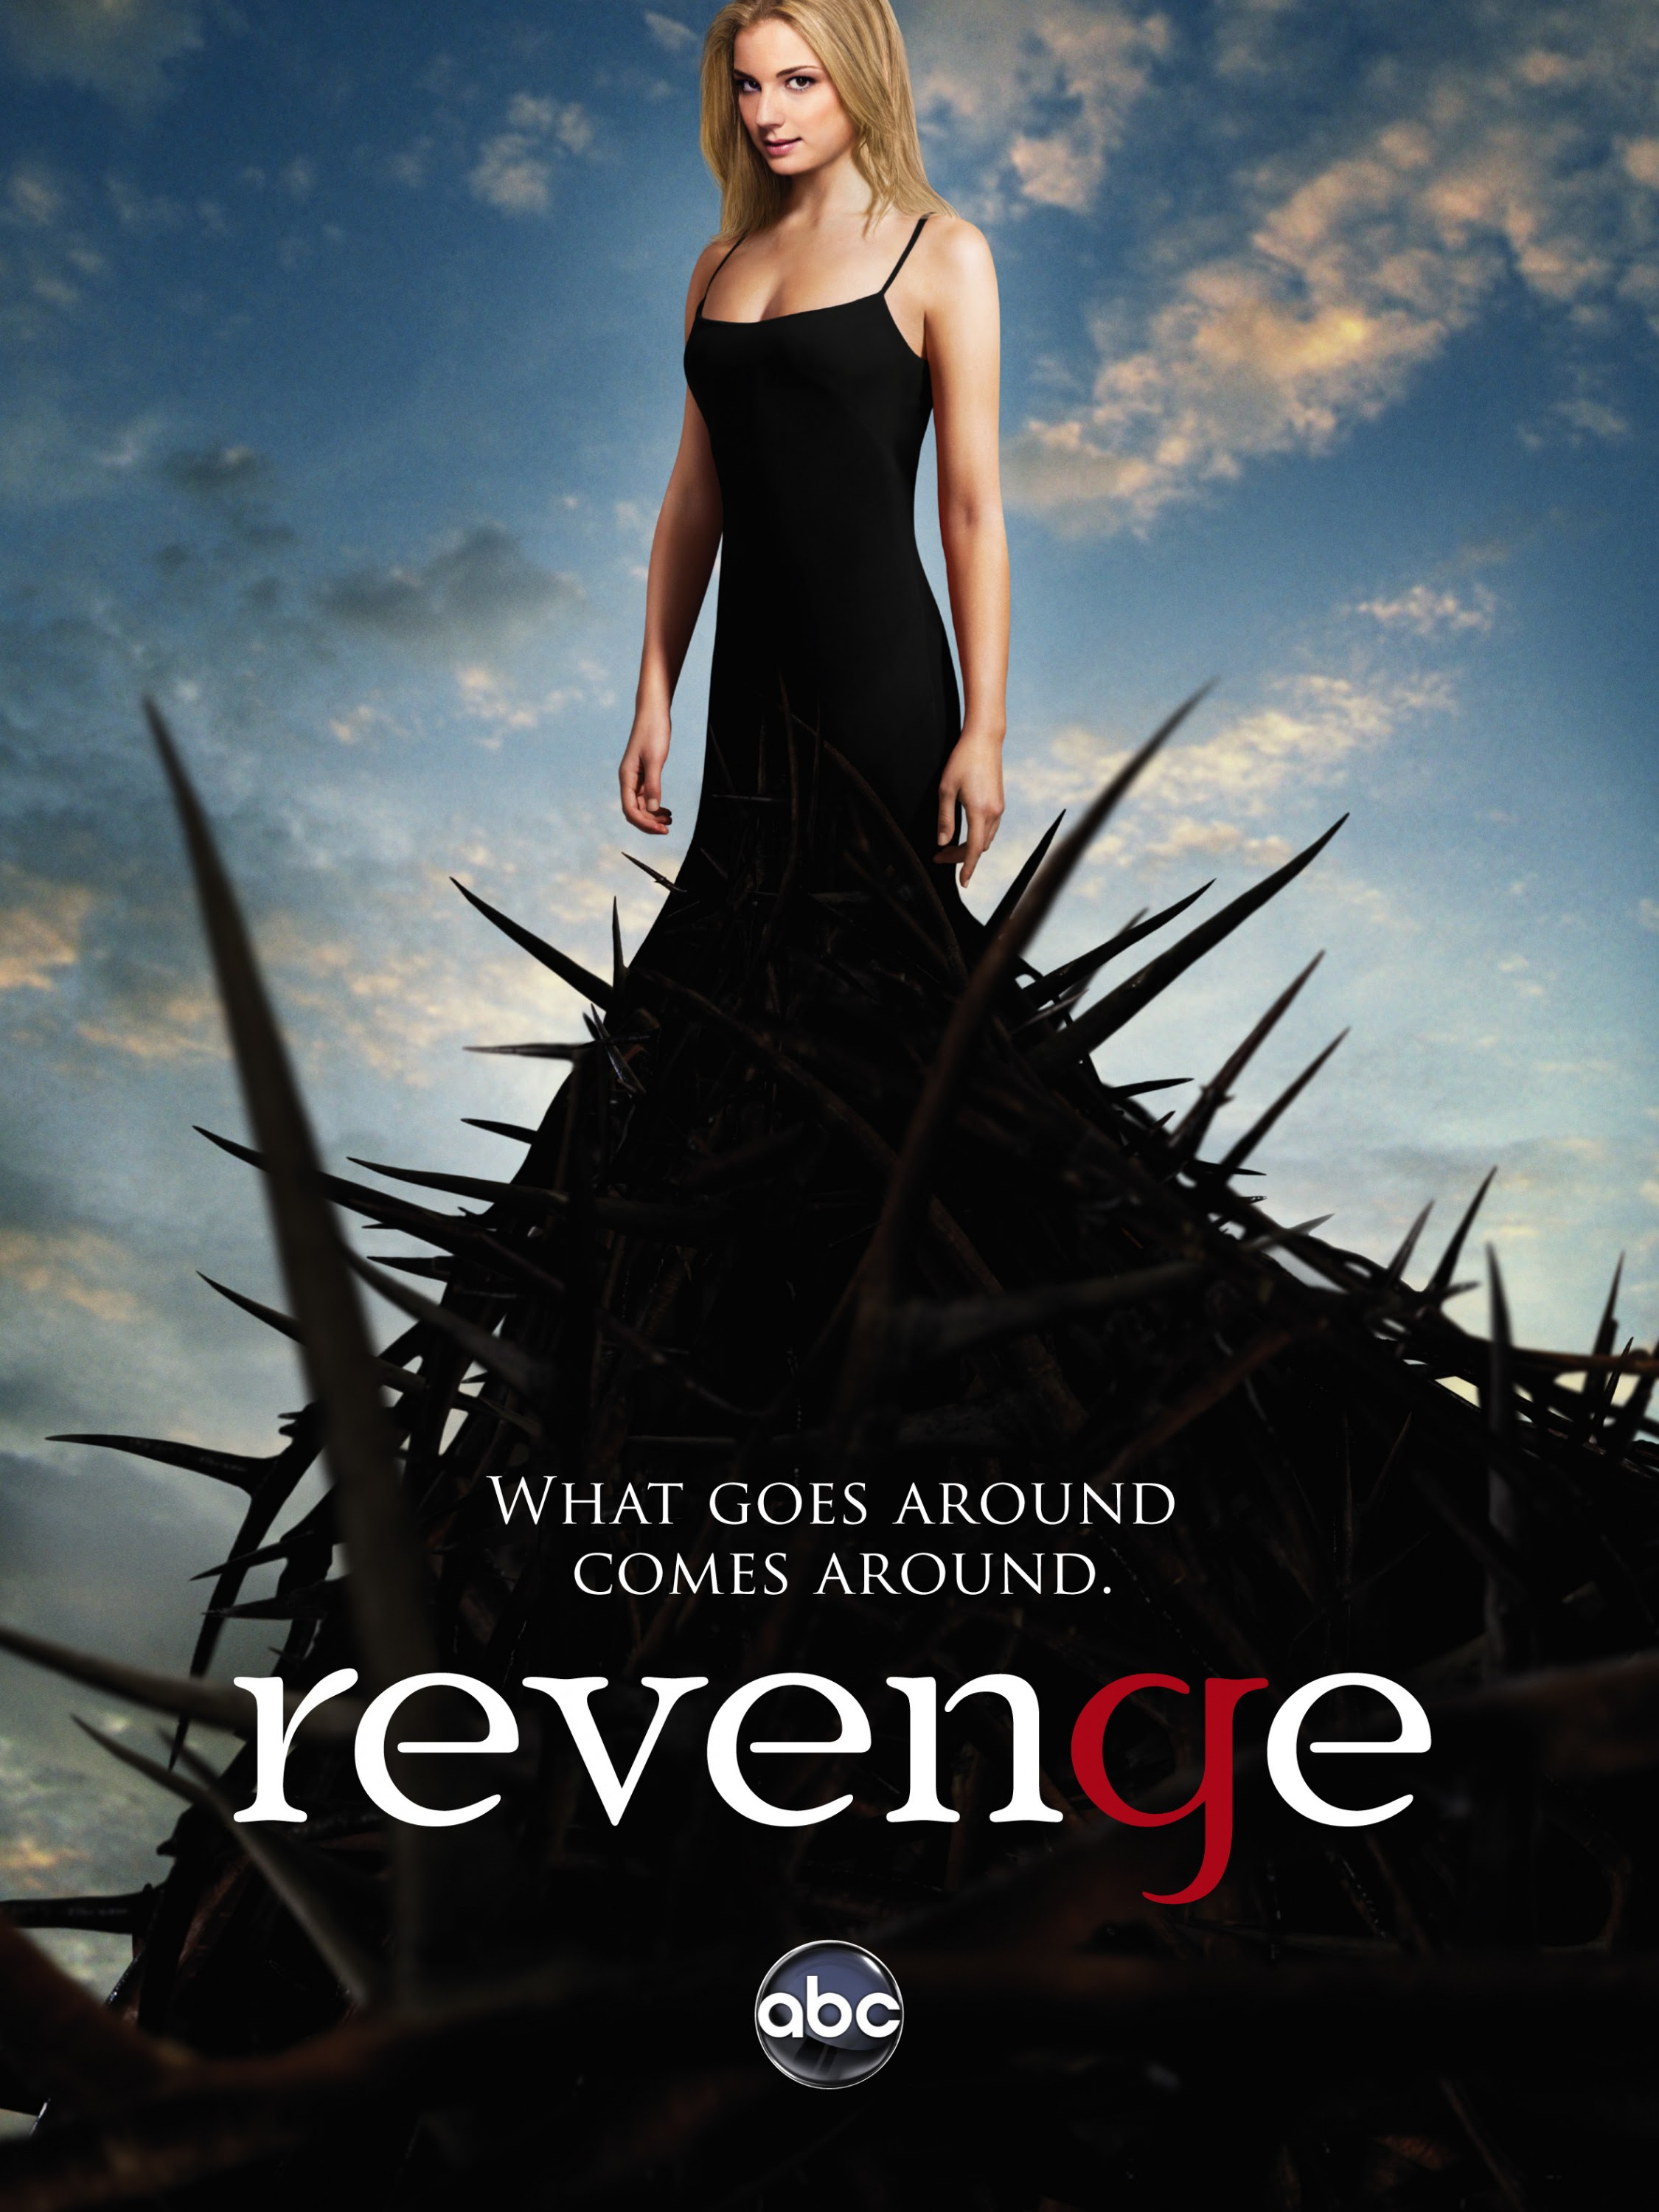 Mega Sized Movie Poster Image for Revenge